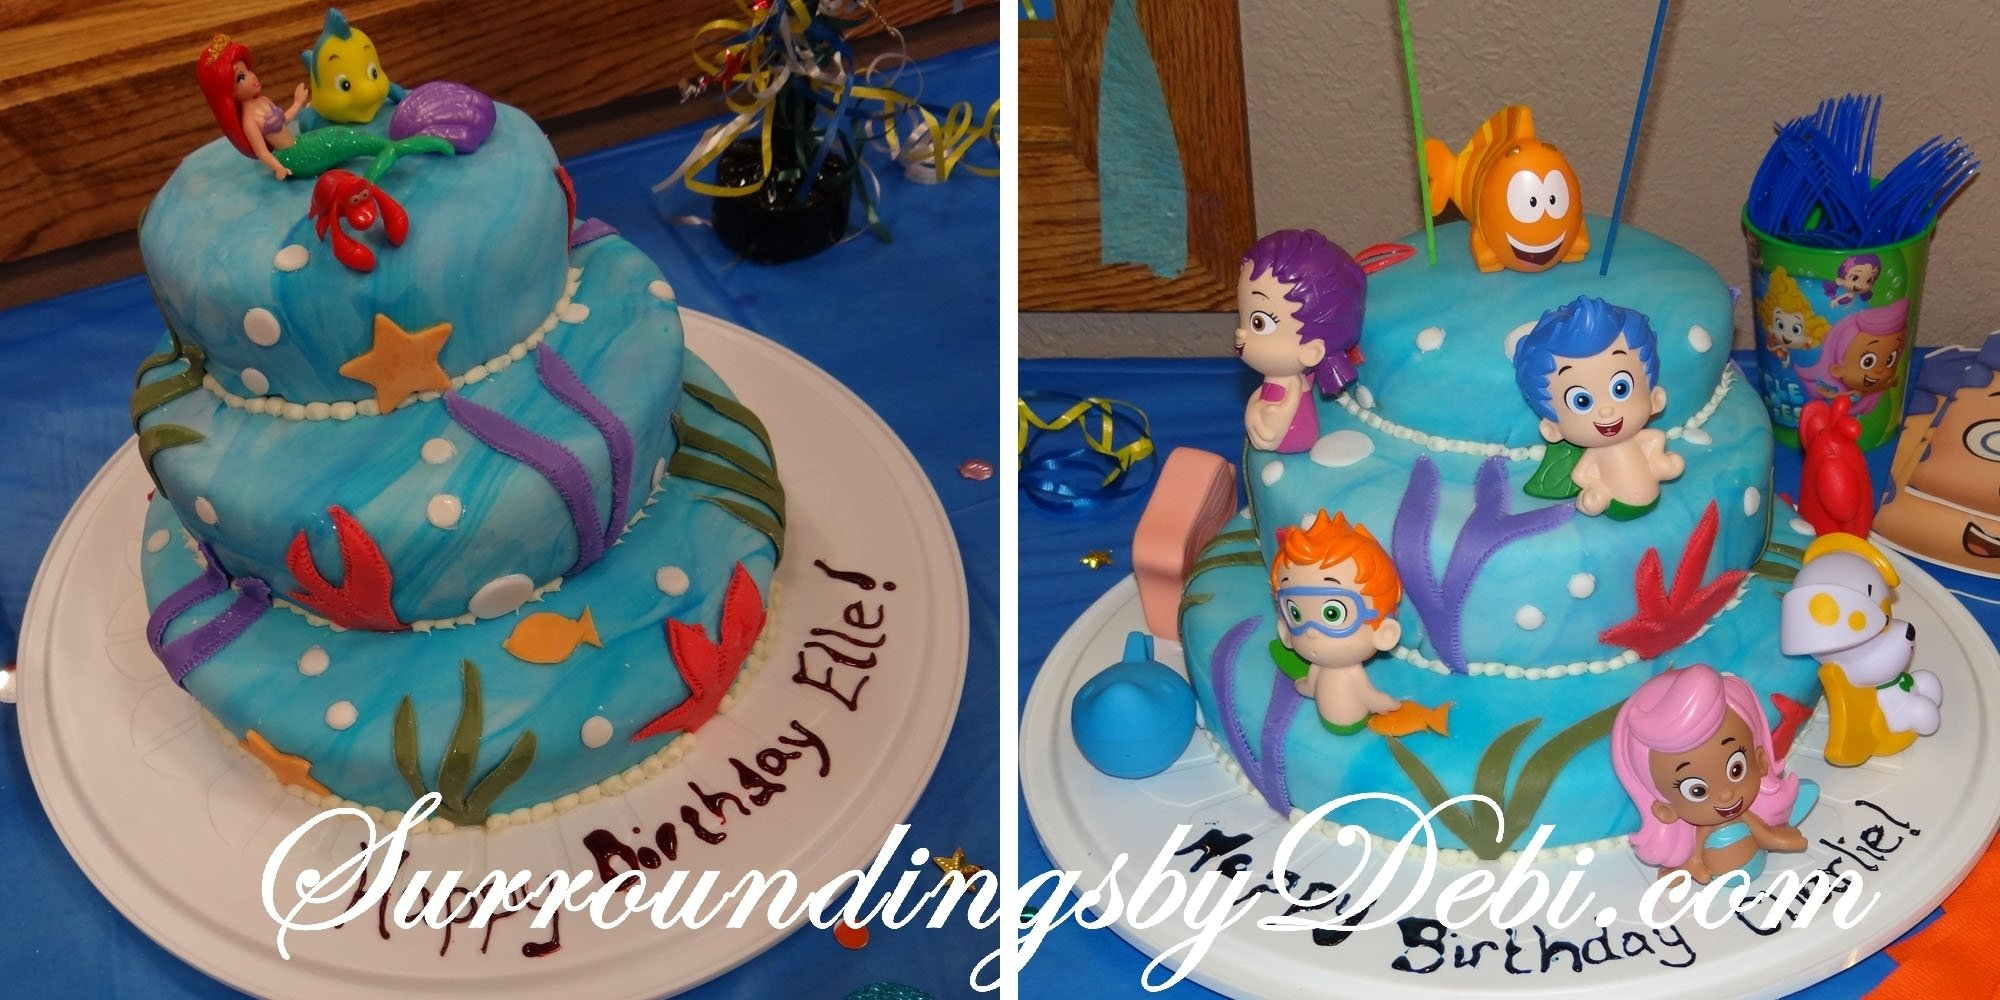 ideas: bubble guppies birthday party | bubble guppies party favors